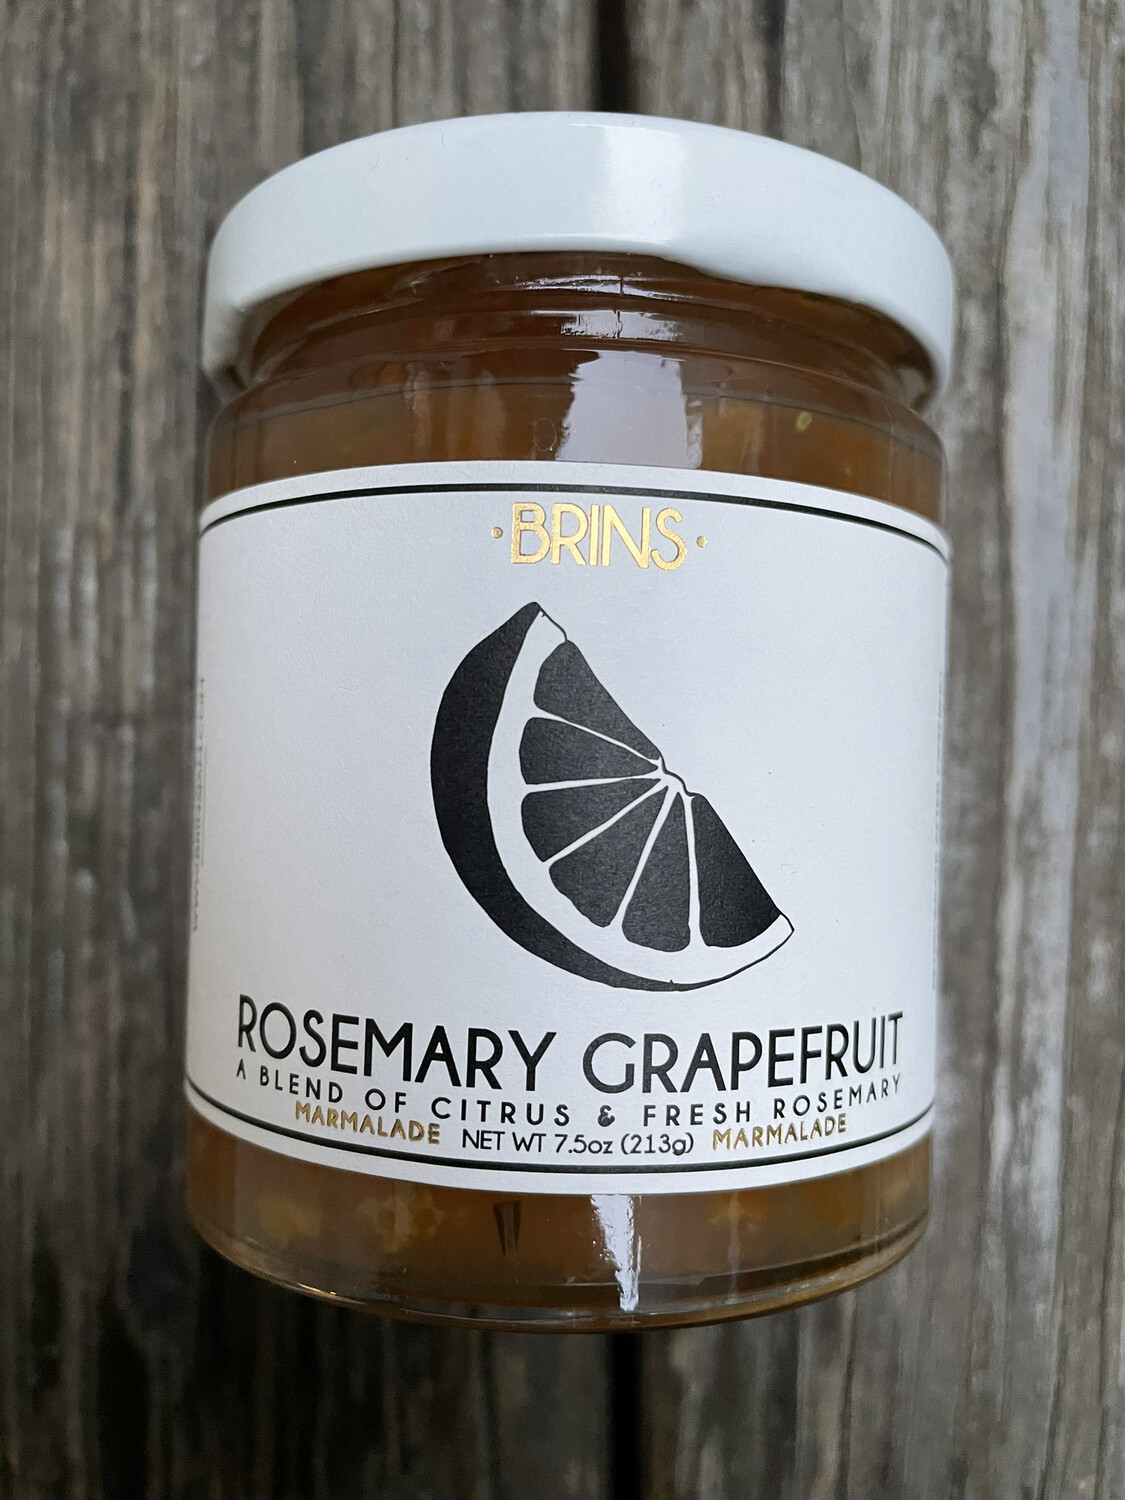 BRINS rosemary grapefruit